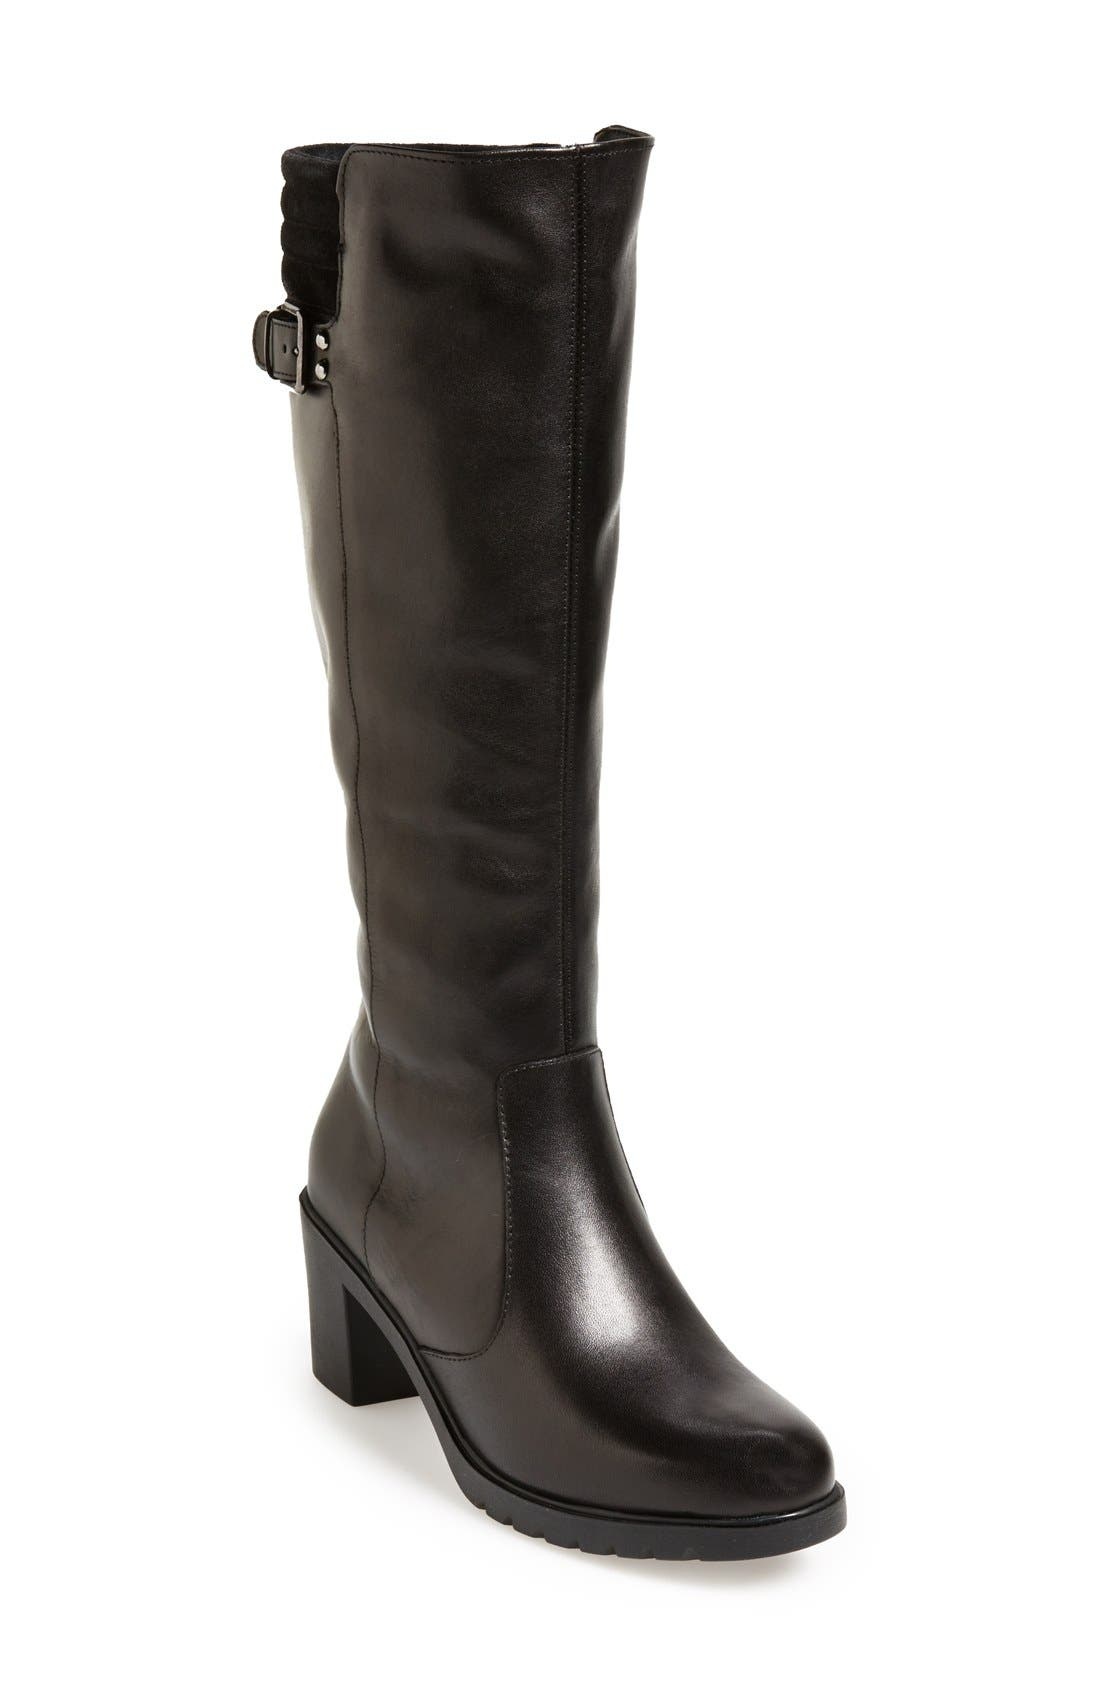 Main Image - The FLEXX 'One Trick Pony' Leather Tall Boot (Women)